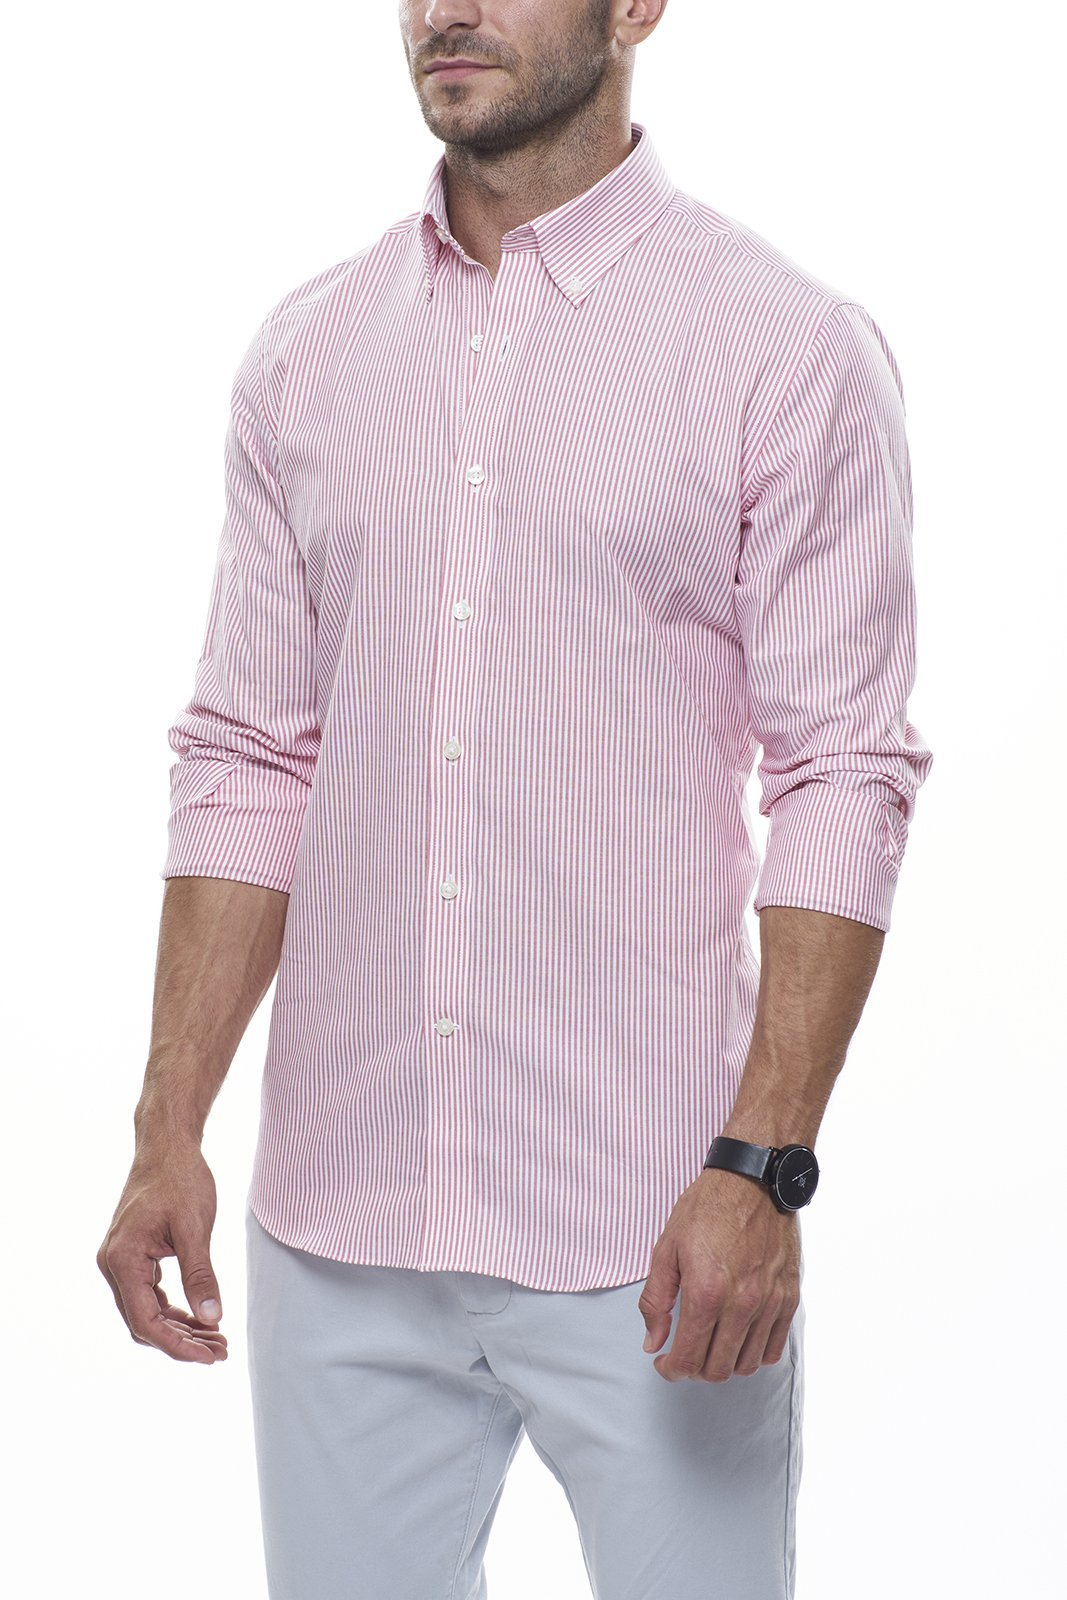 Brick Striped Oxford: Modified-Spread Collar, Barrel Cuff